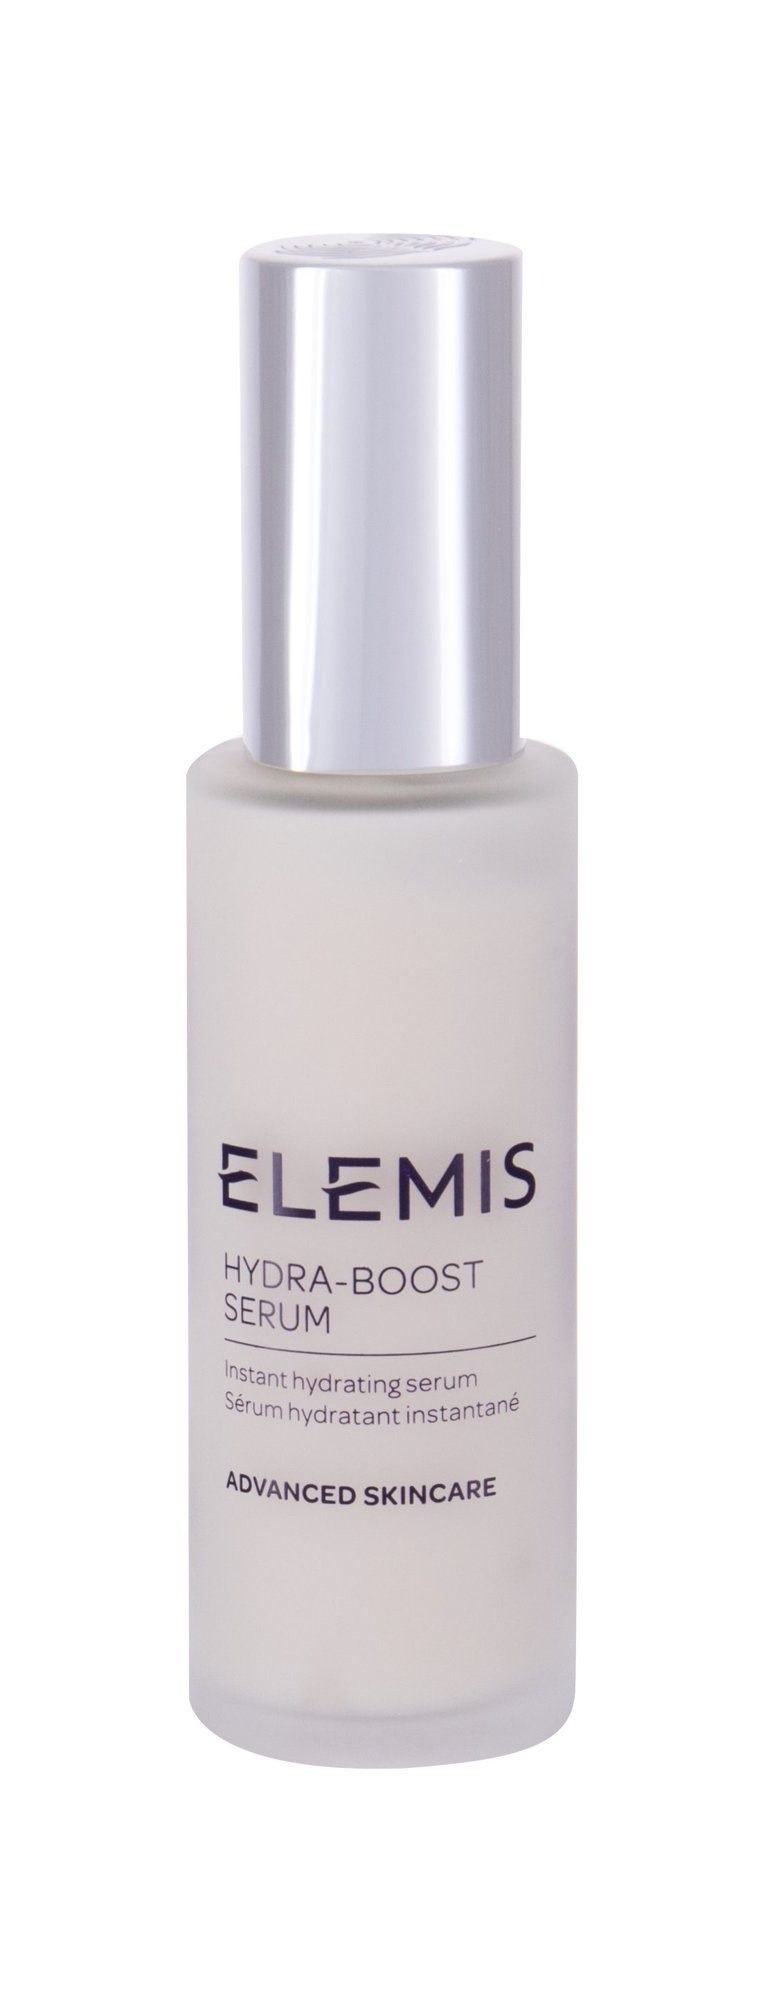 Elemis Advanced Skincare Hydra-Boost, arcápoló szérum 30ml